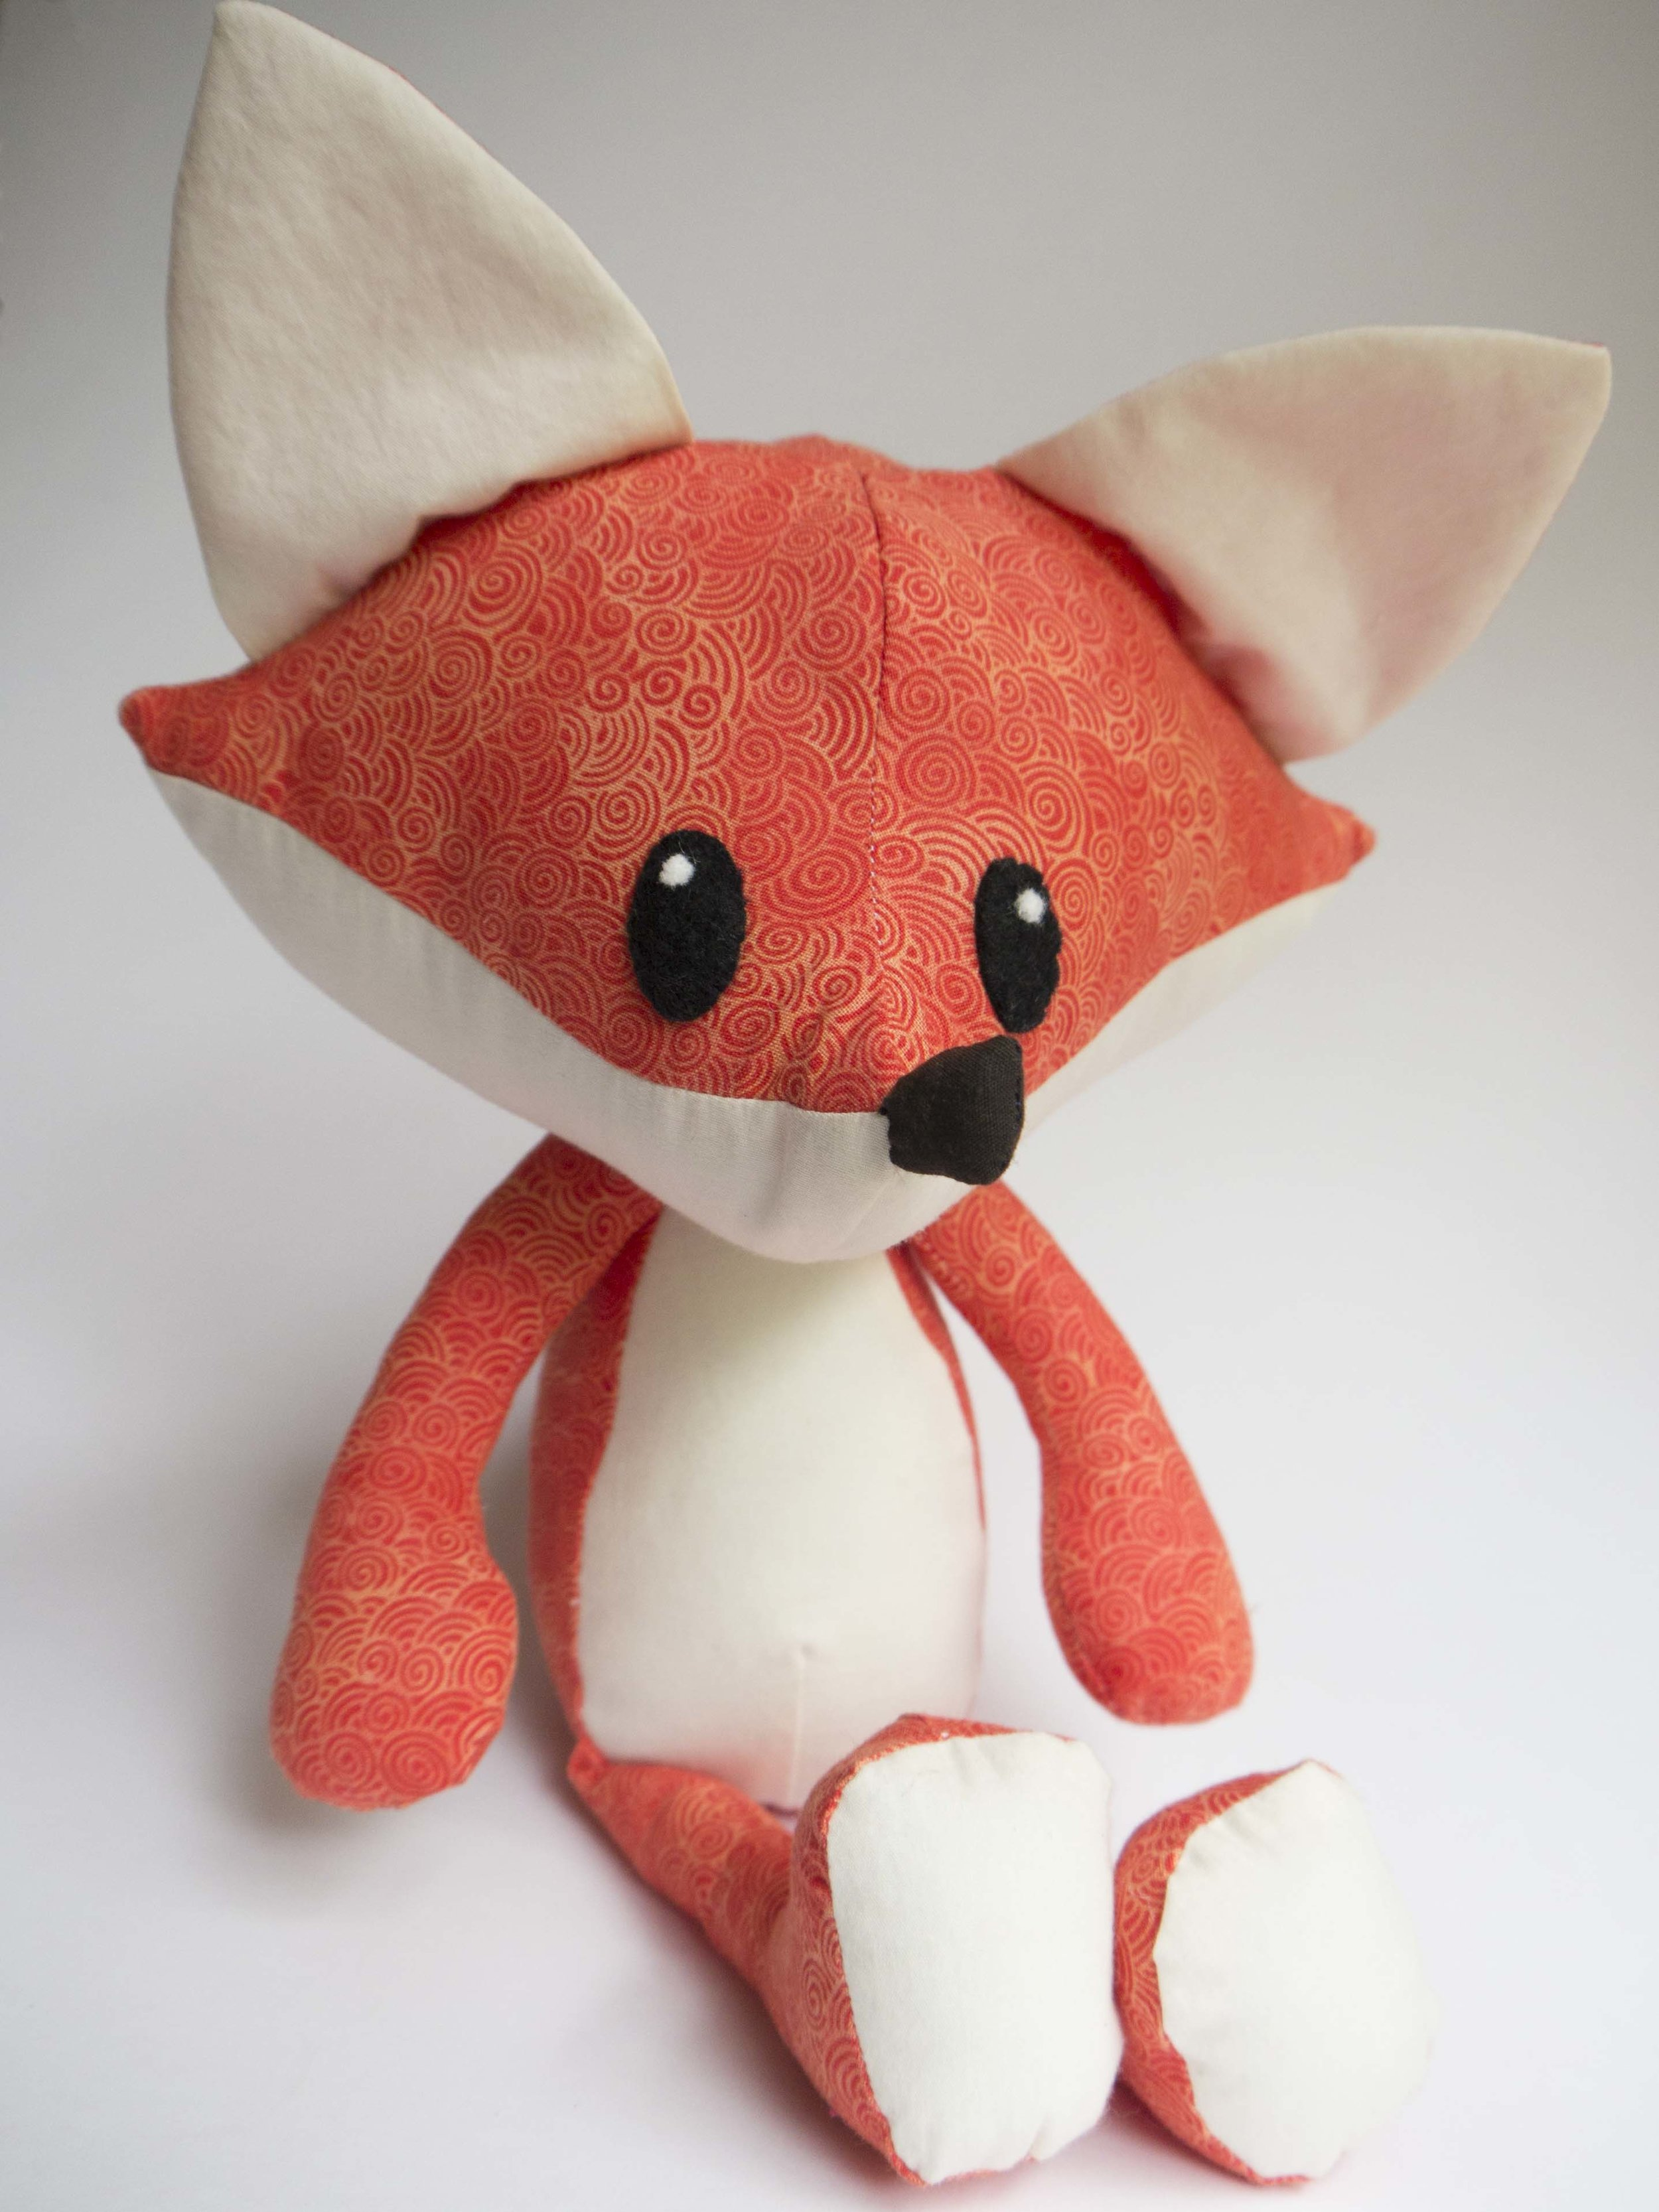 Have you been looking for the free fox pattern?  - Here is your chance! Click here to access Cherry.